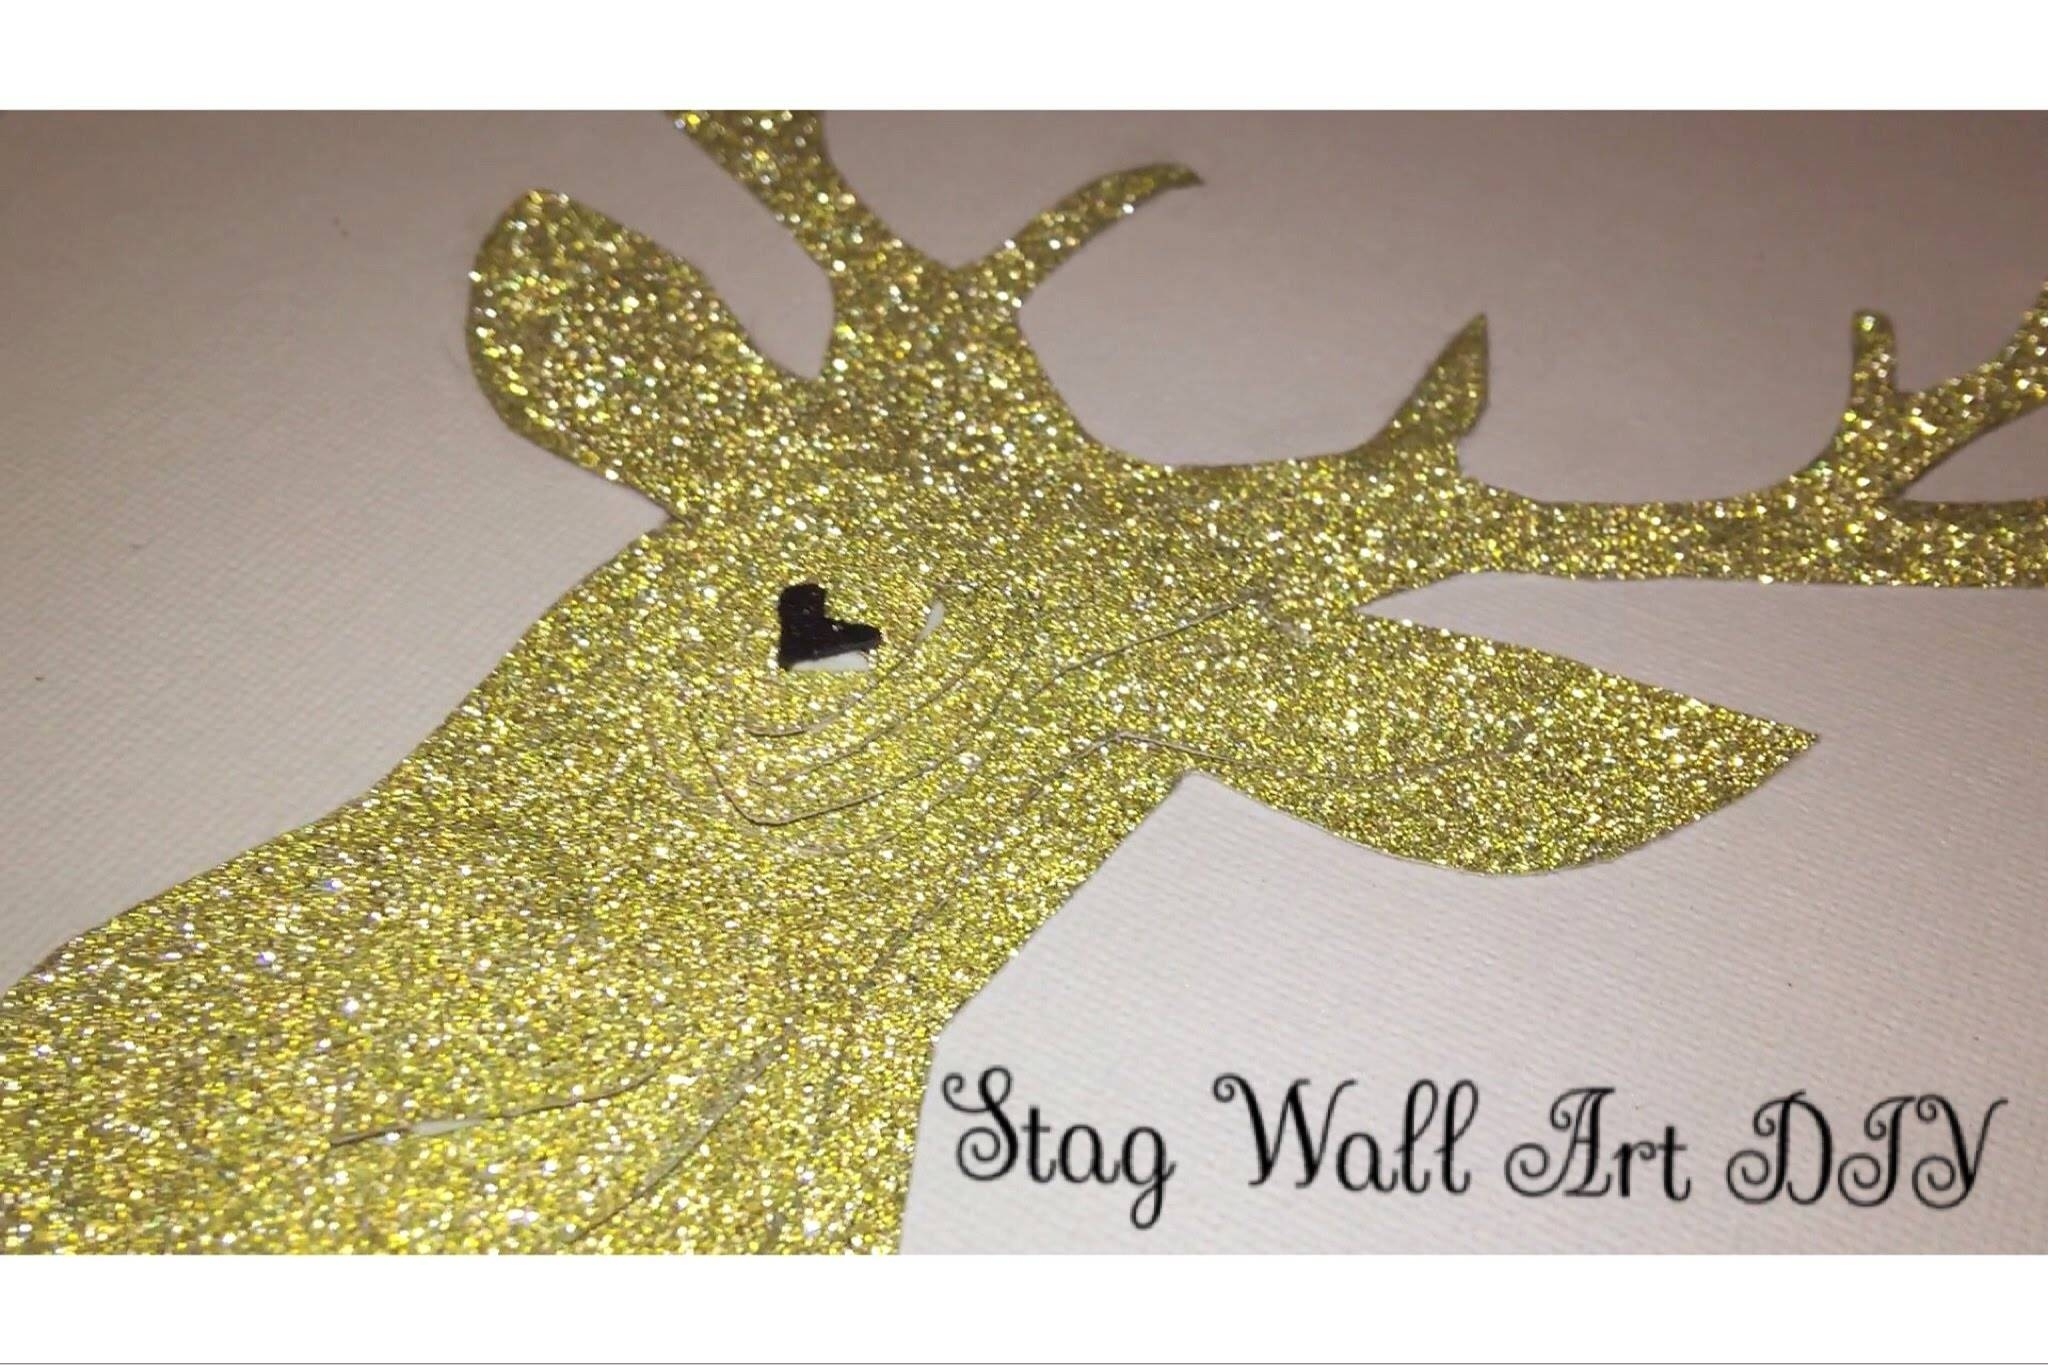 Diy 3D Stag Wall Art Tutorial | Easy Home Decor Diy – Youtube Throughout Most Up To Date Diy 3D Wall Art Decor (View 15 of 20)